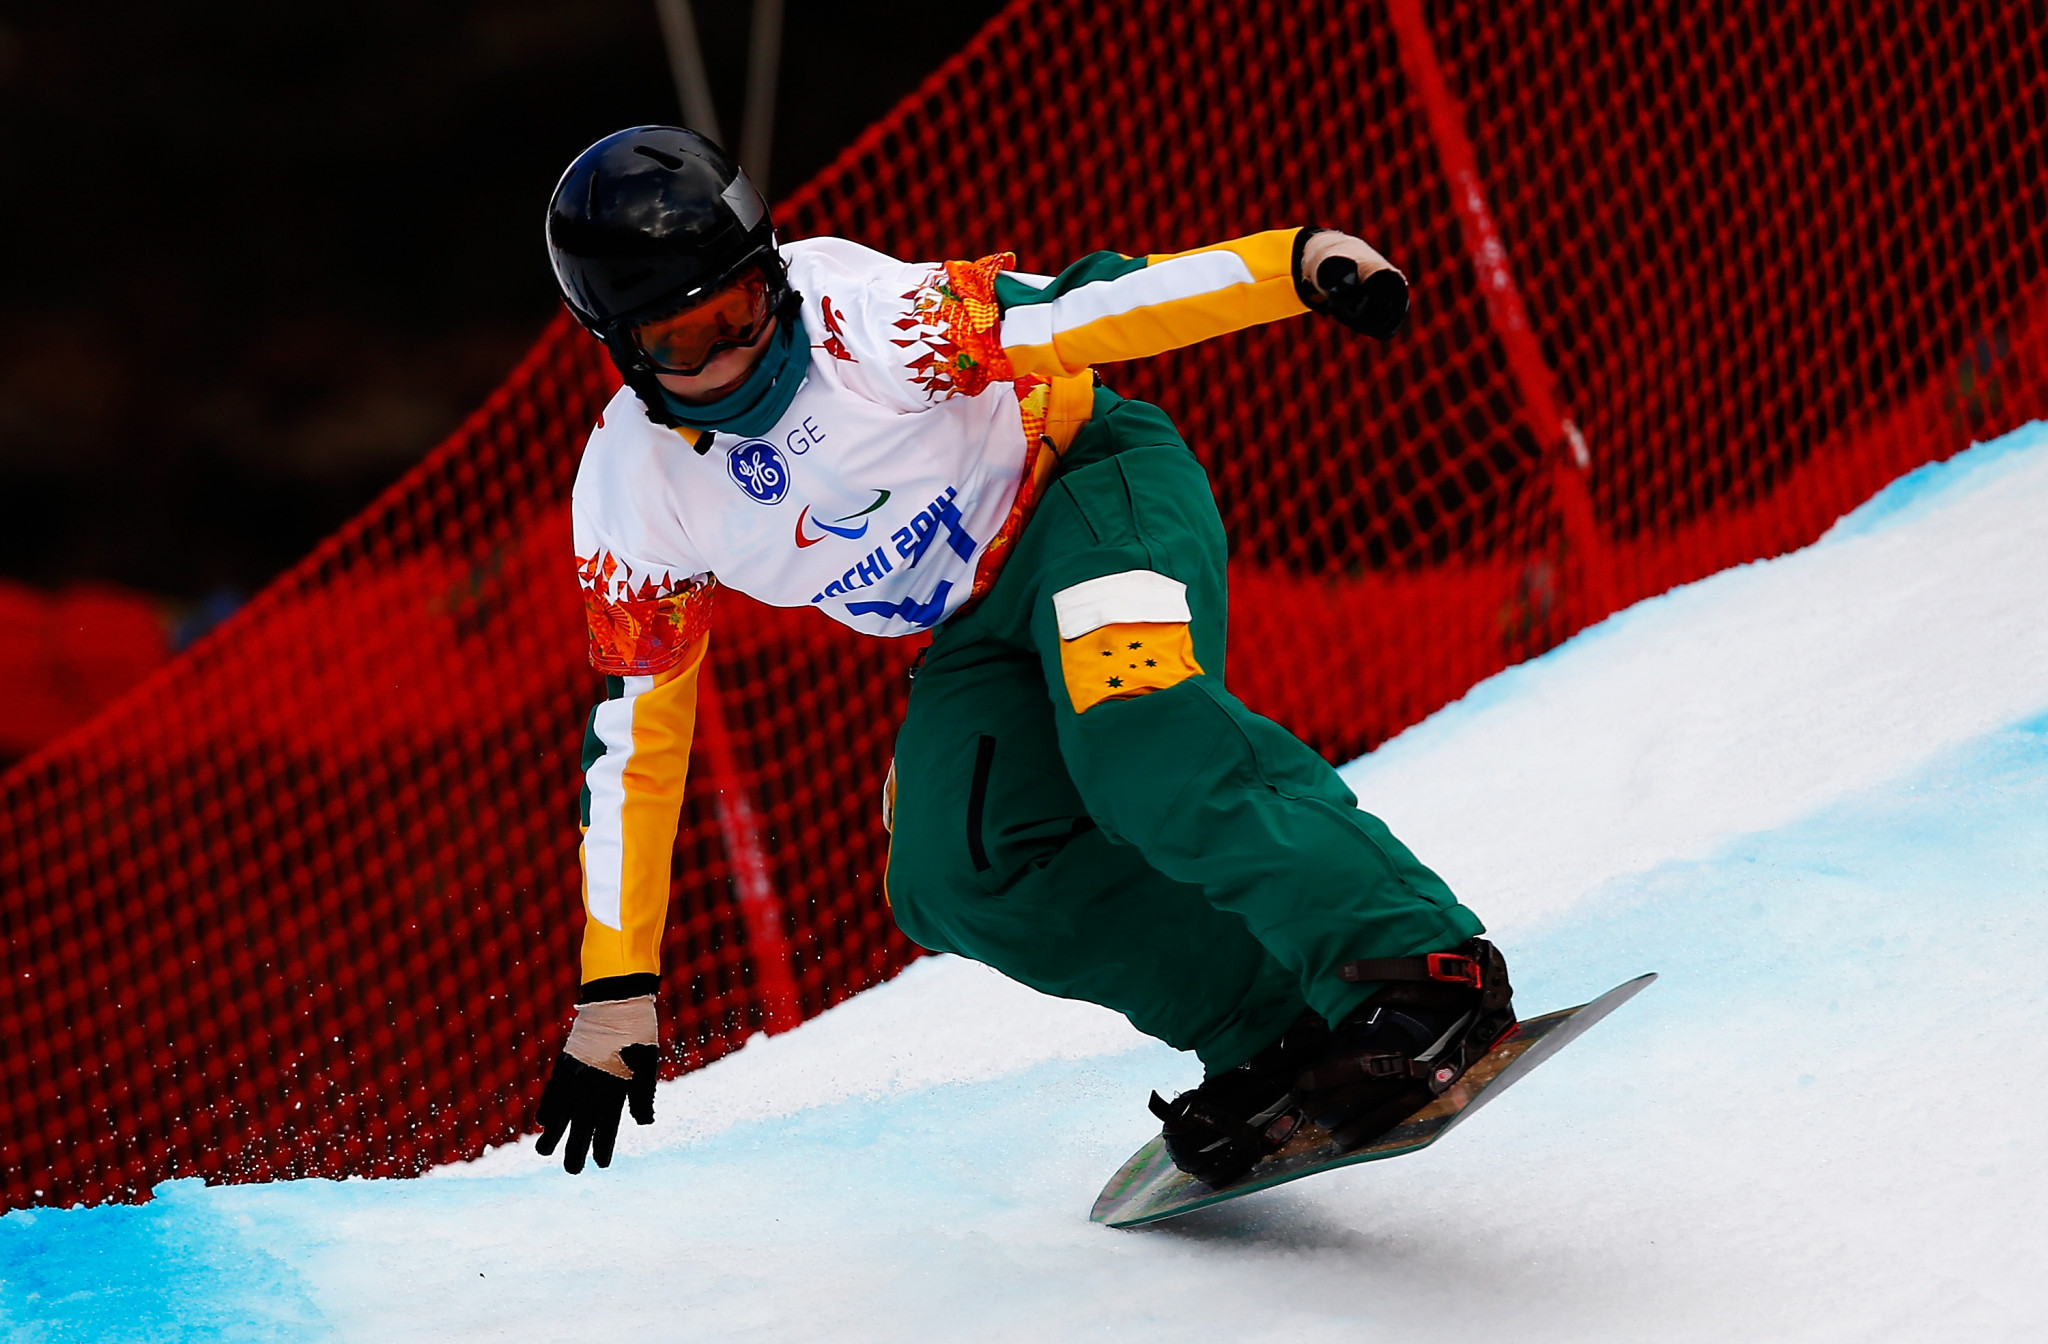 Australian Pyeongchang 2018 hopefuls aiming to boost awareness of their disability